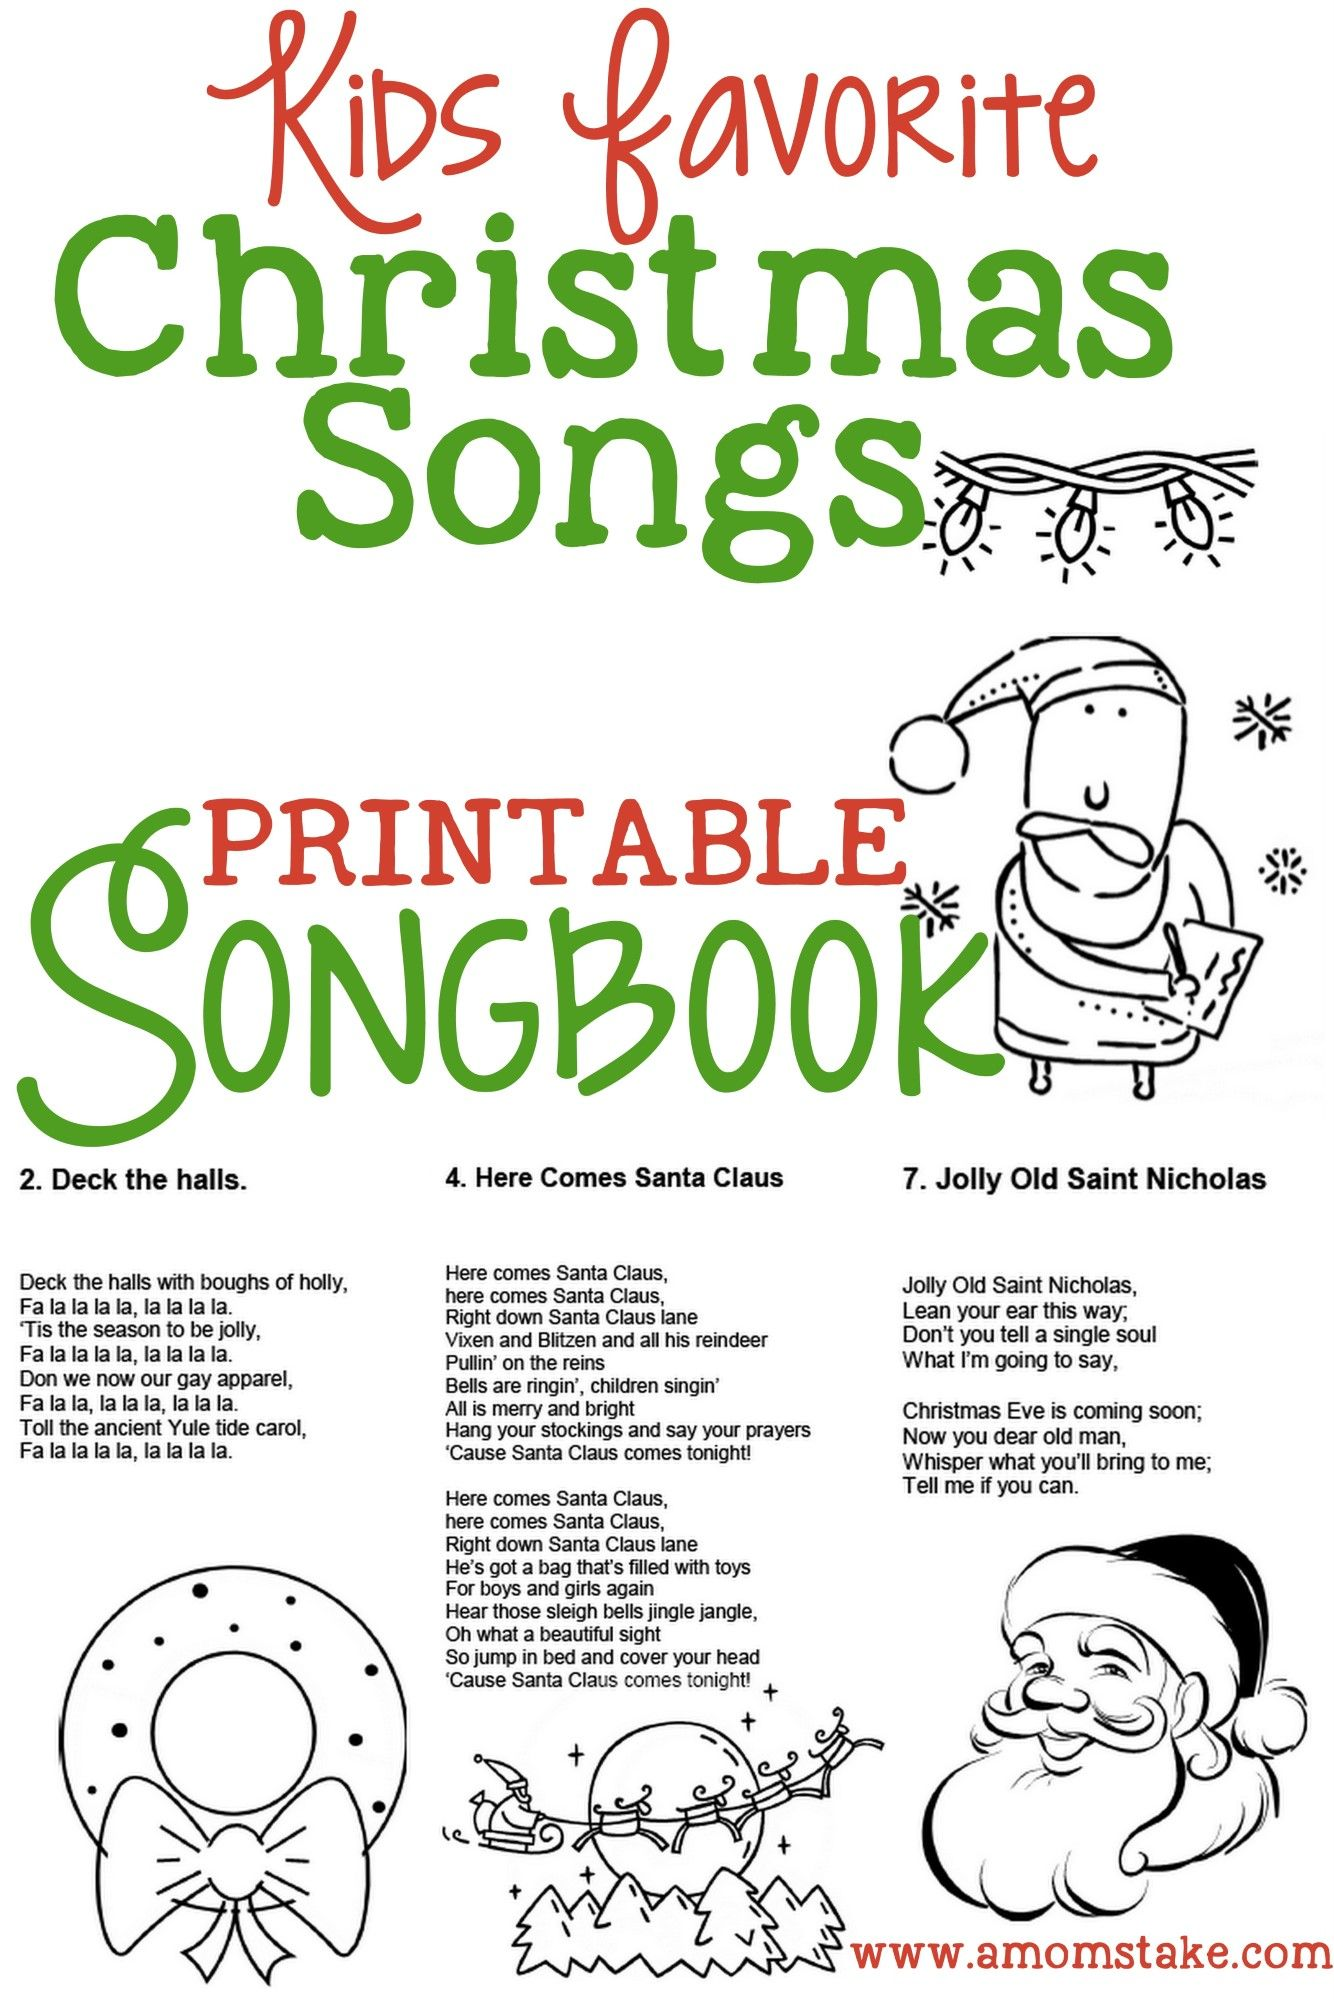 Christmas Songs for Kids Free Printable Songbook! A